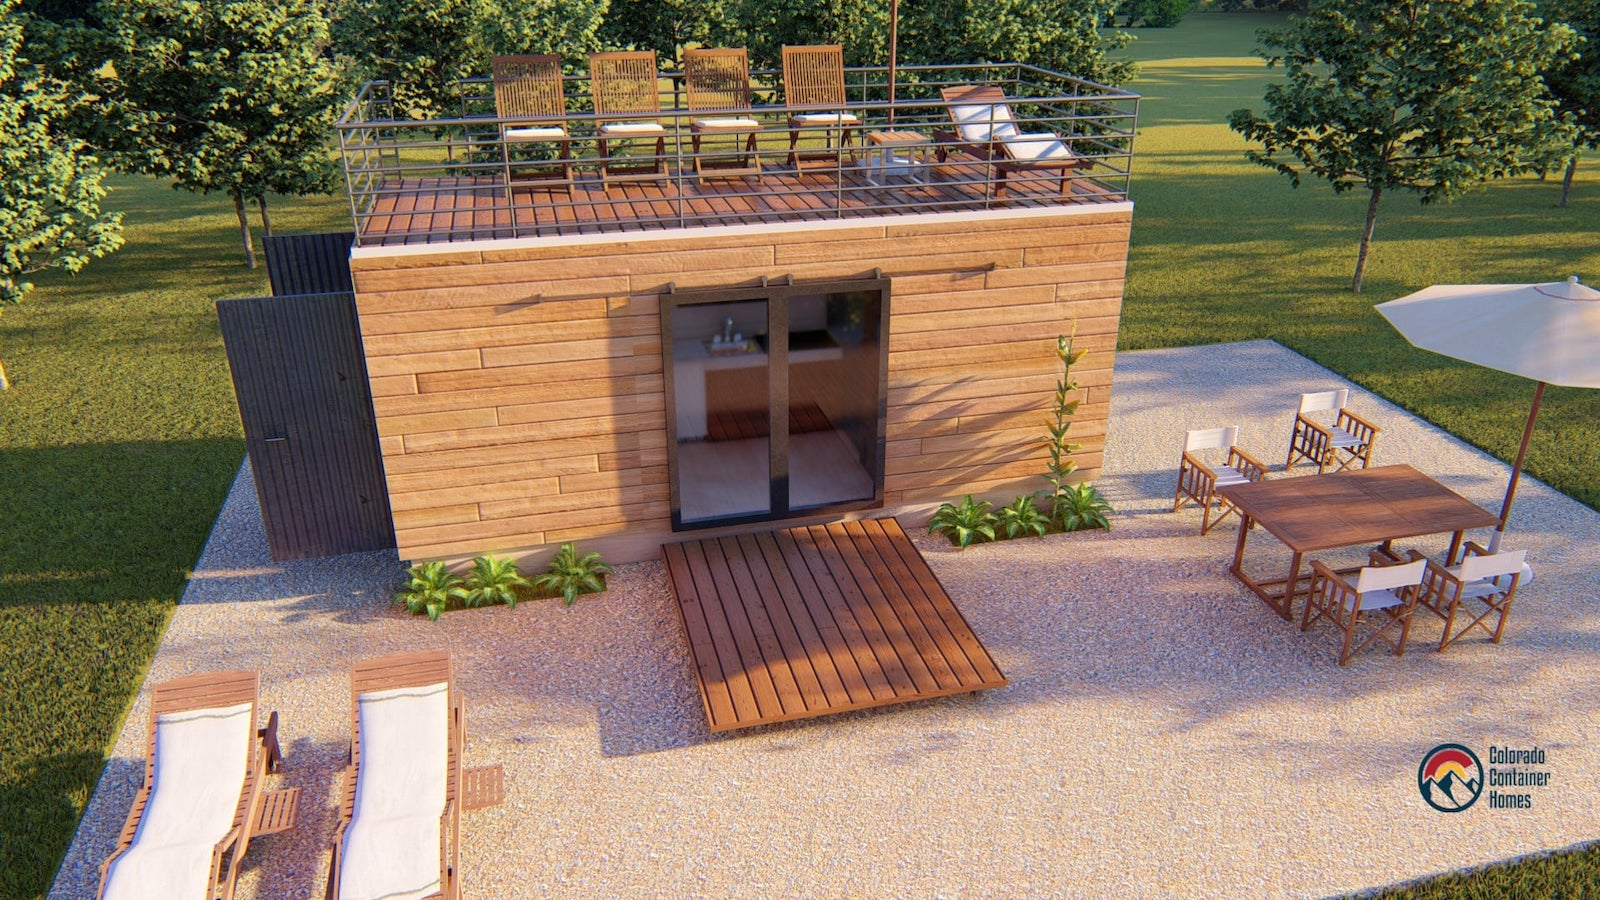 Image of a Colorado Container Home rendering